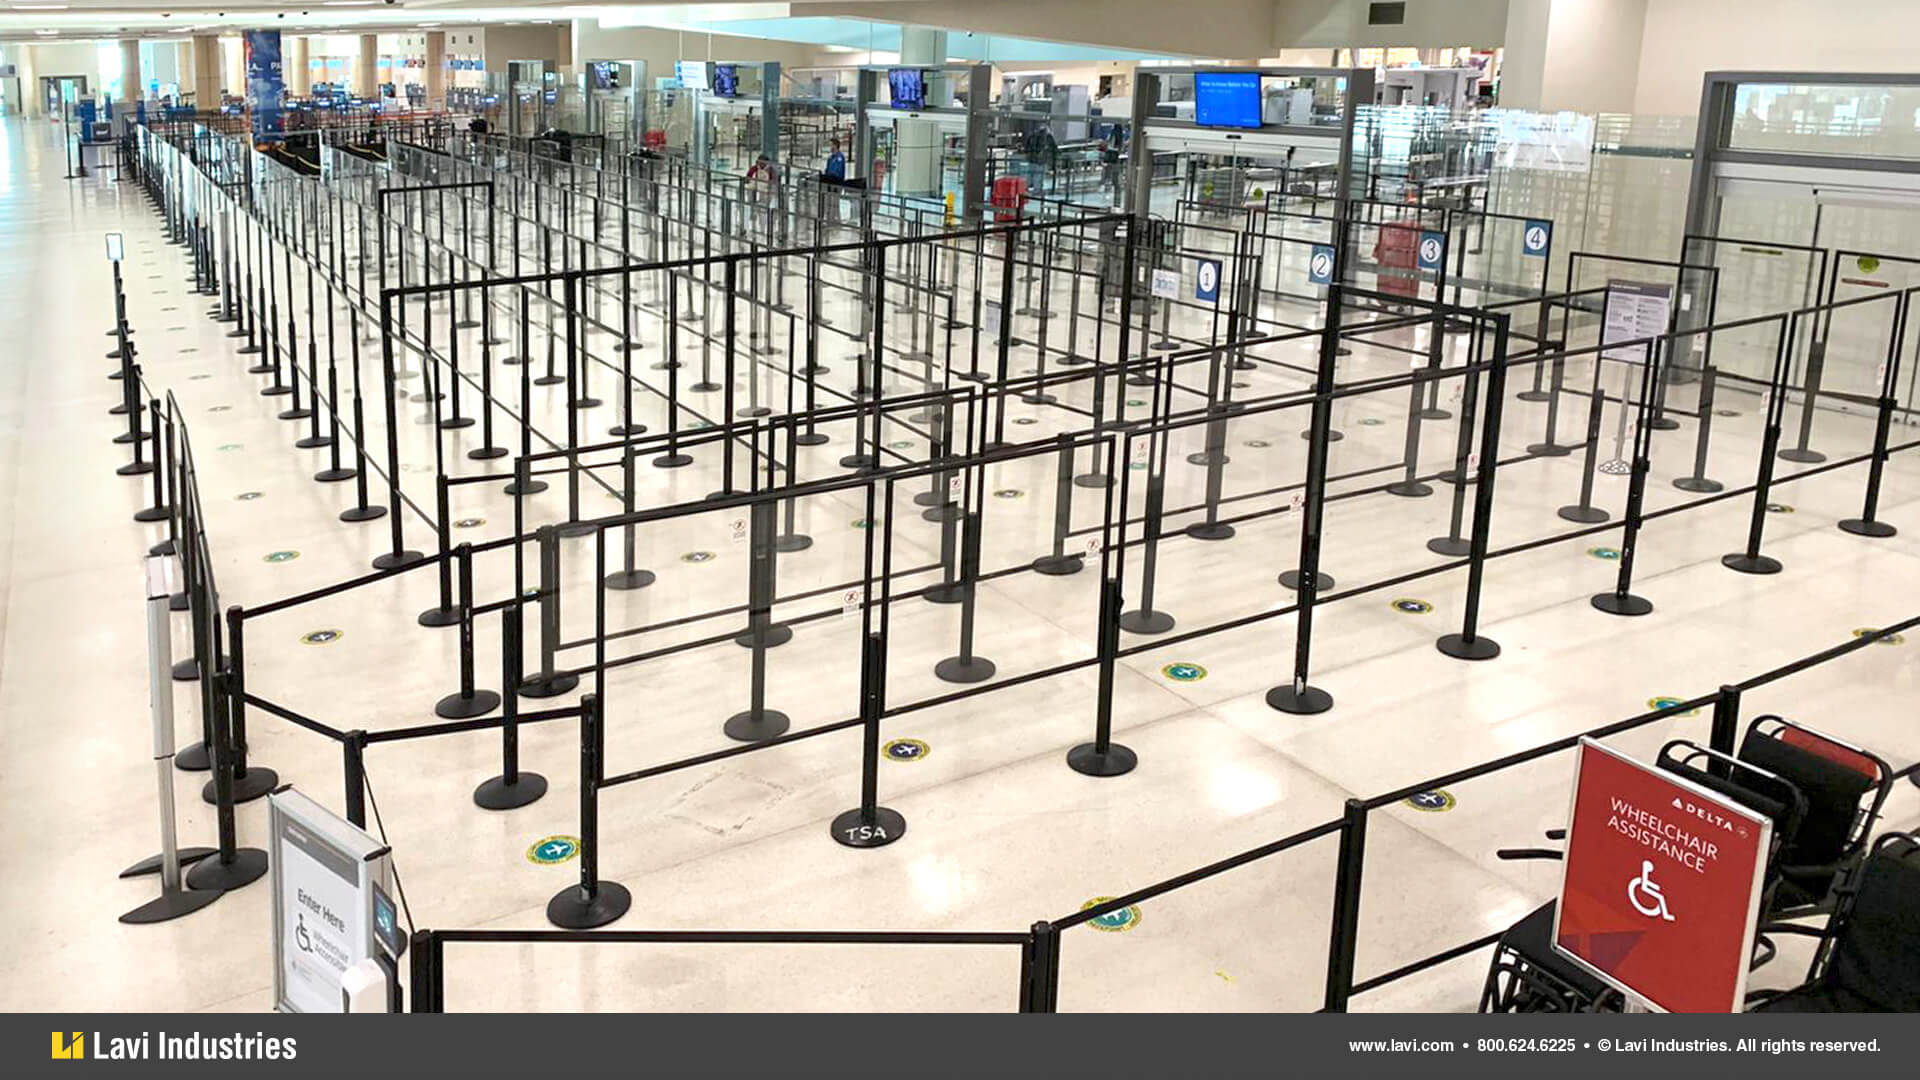 Airport,Government,Barriers,Queuing,Security,SocialDistancing,Directrac,RigidRail,Stanchions,QueueGuard